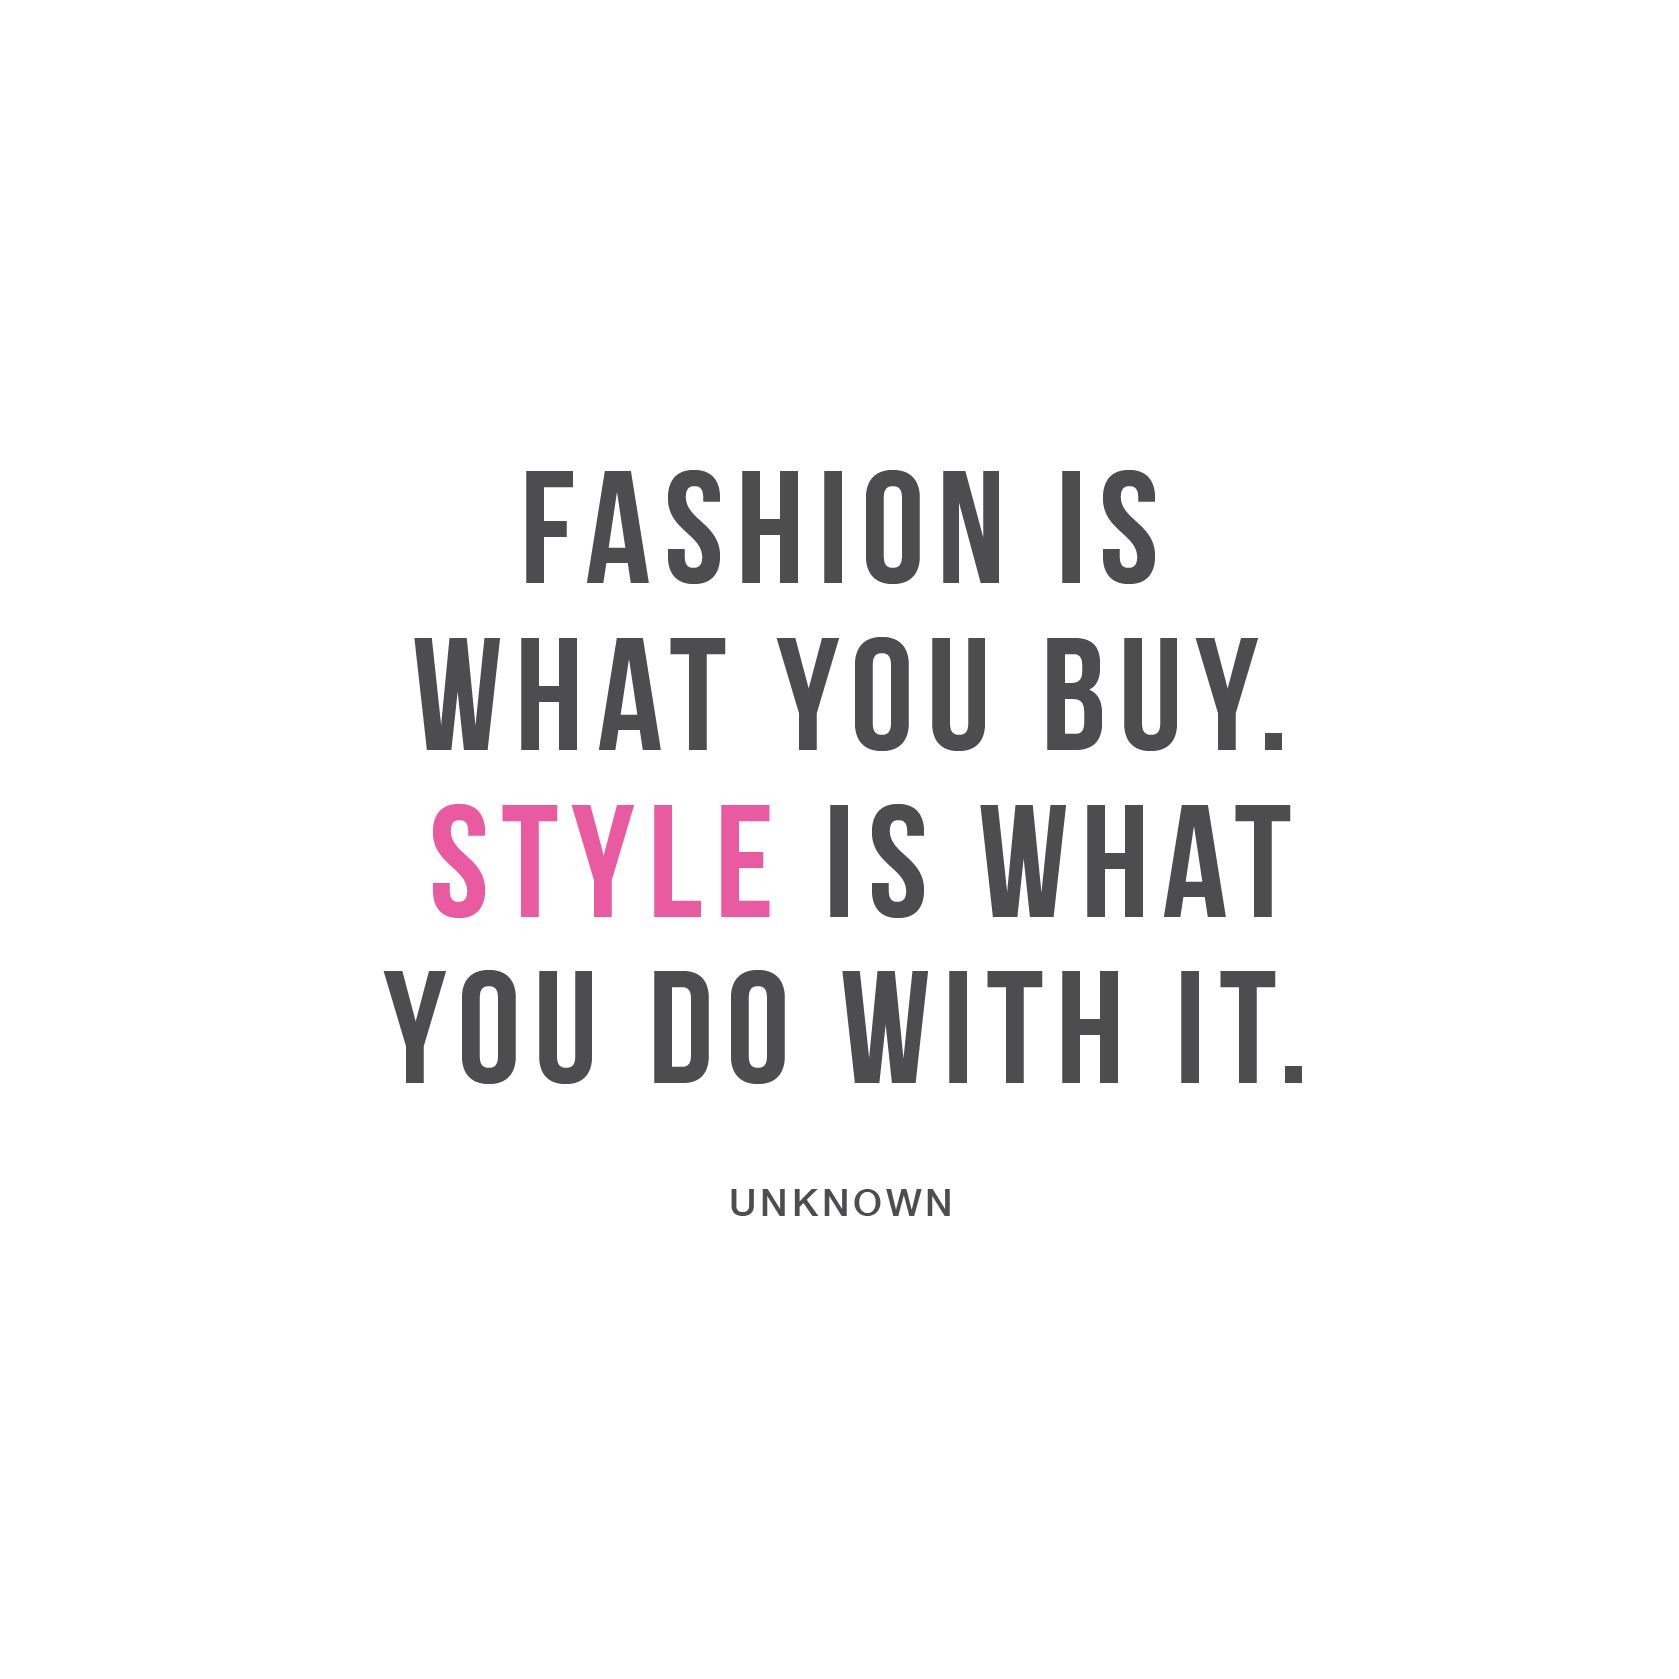 Fashion is what you buy. Style is what you do with it. #fashion